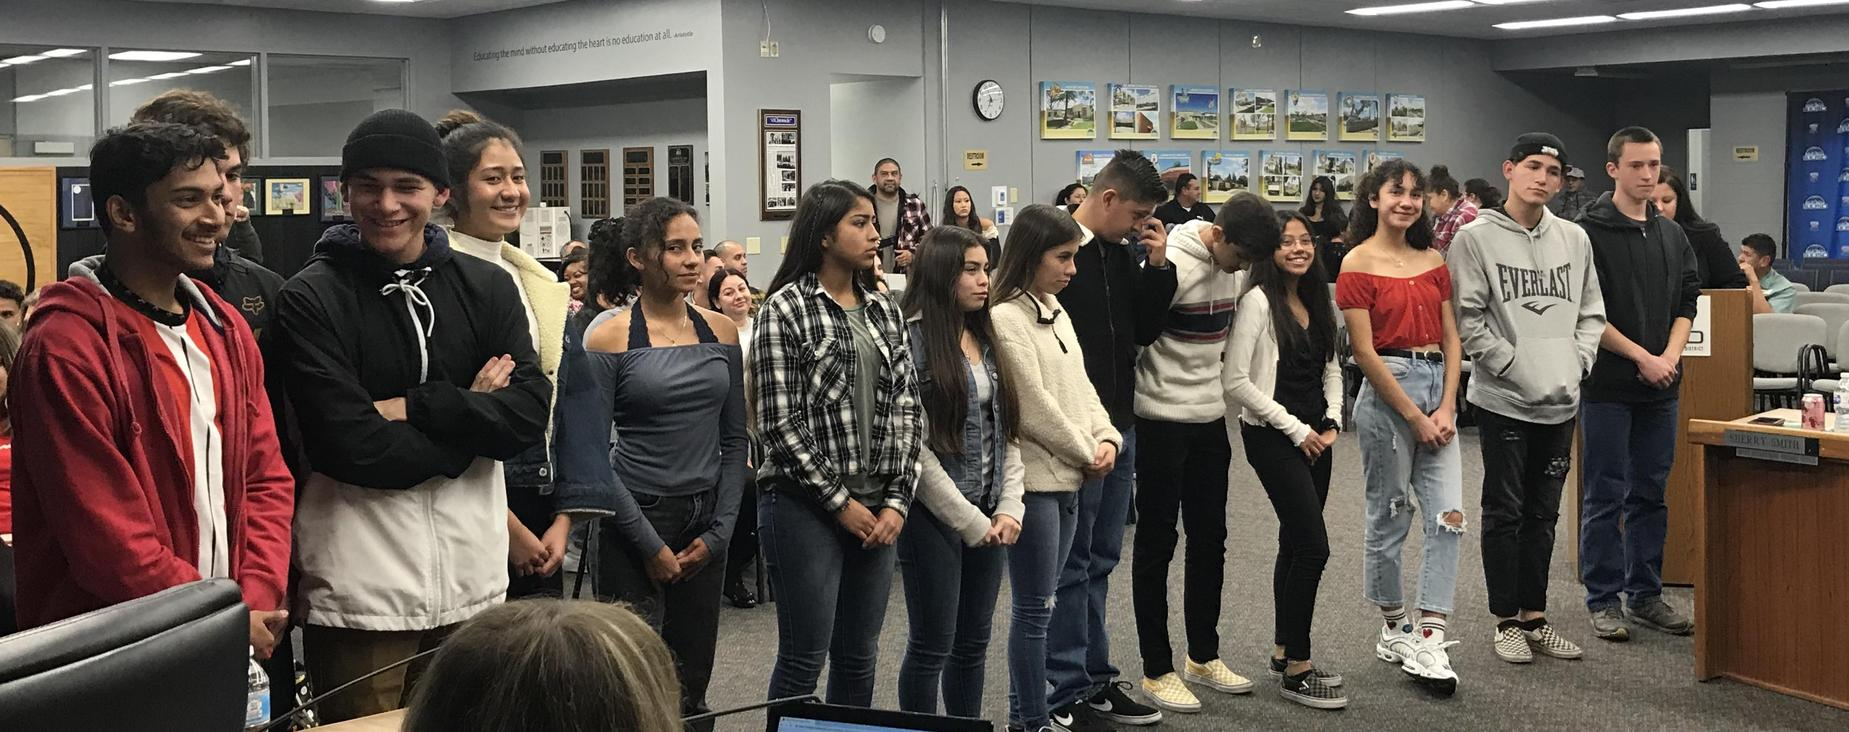 SJHS Cross Country was recognized for their CIF League Championship.  Go, Tigers!